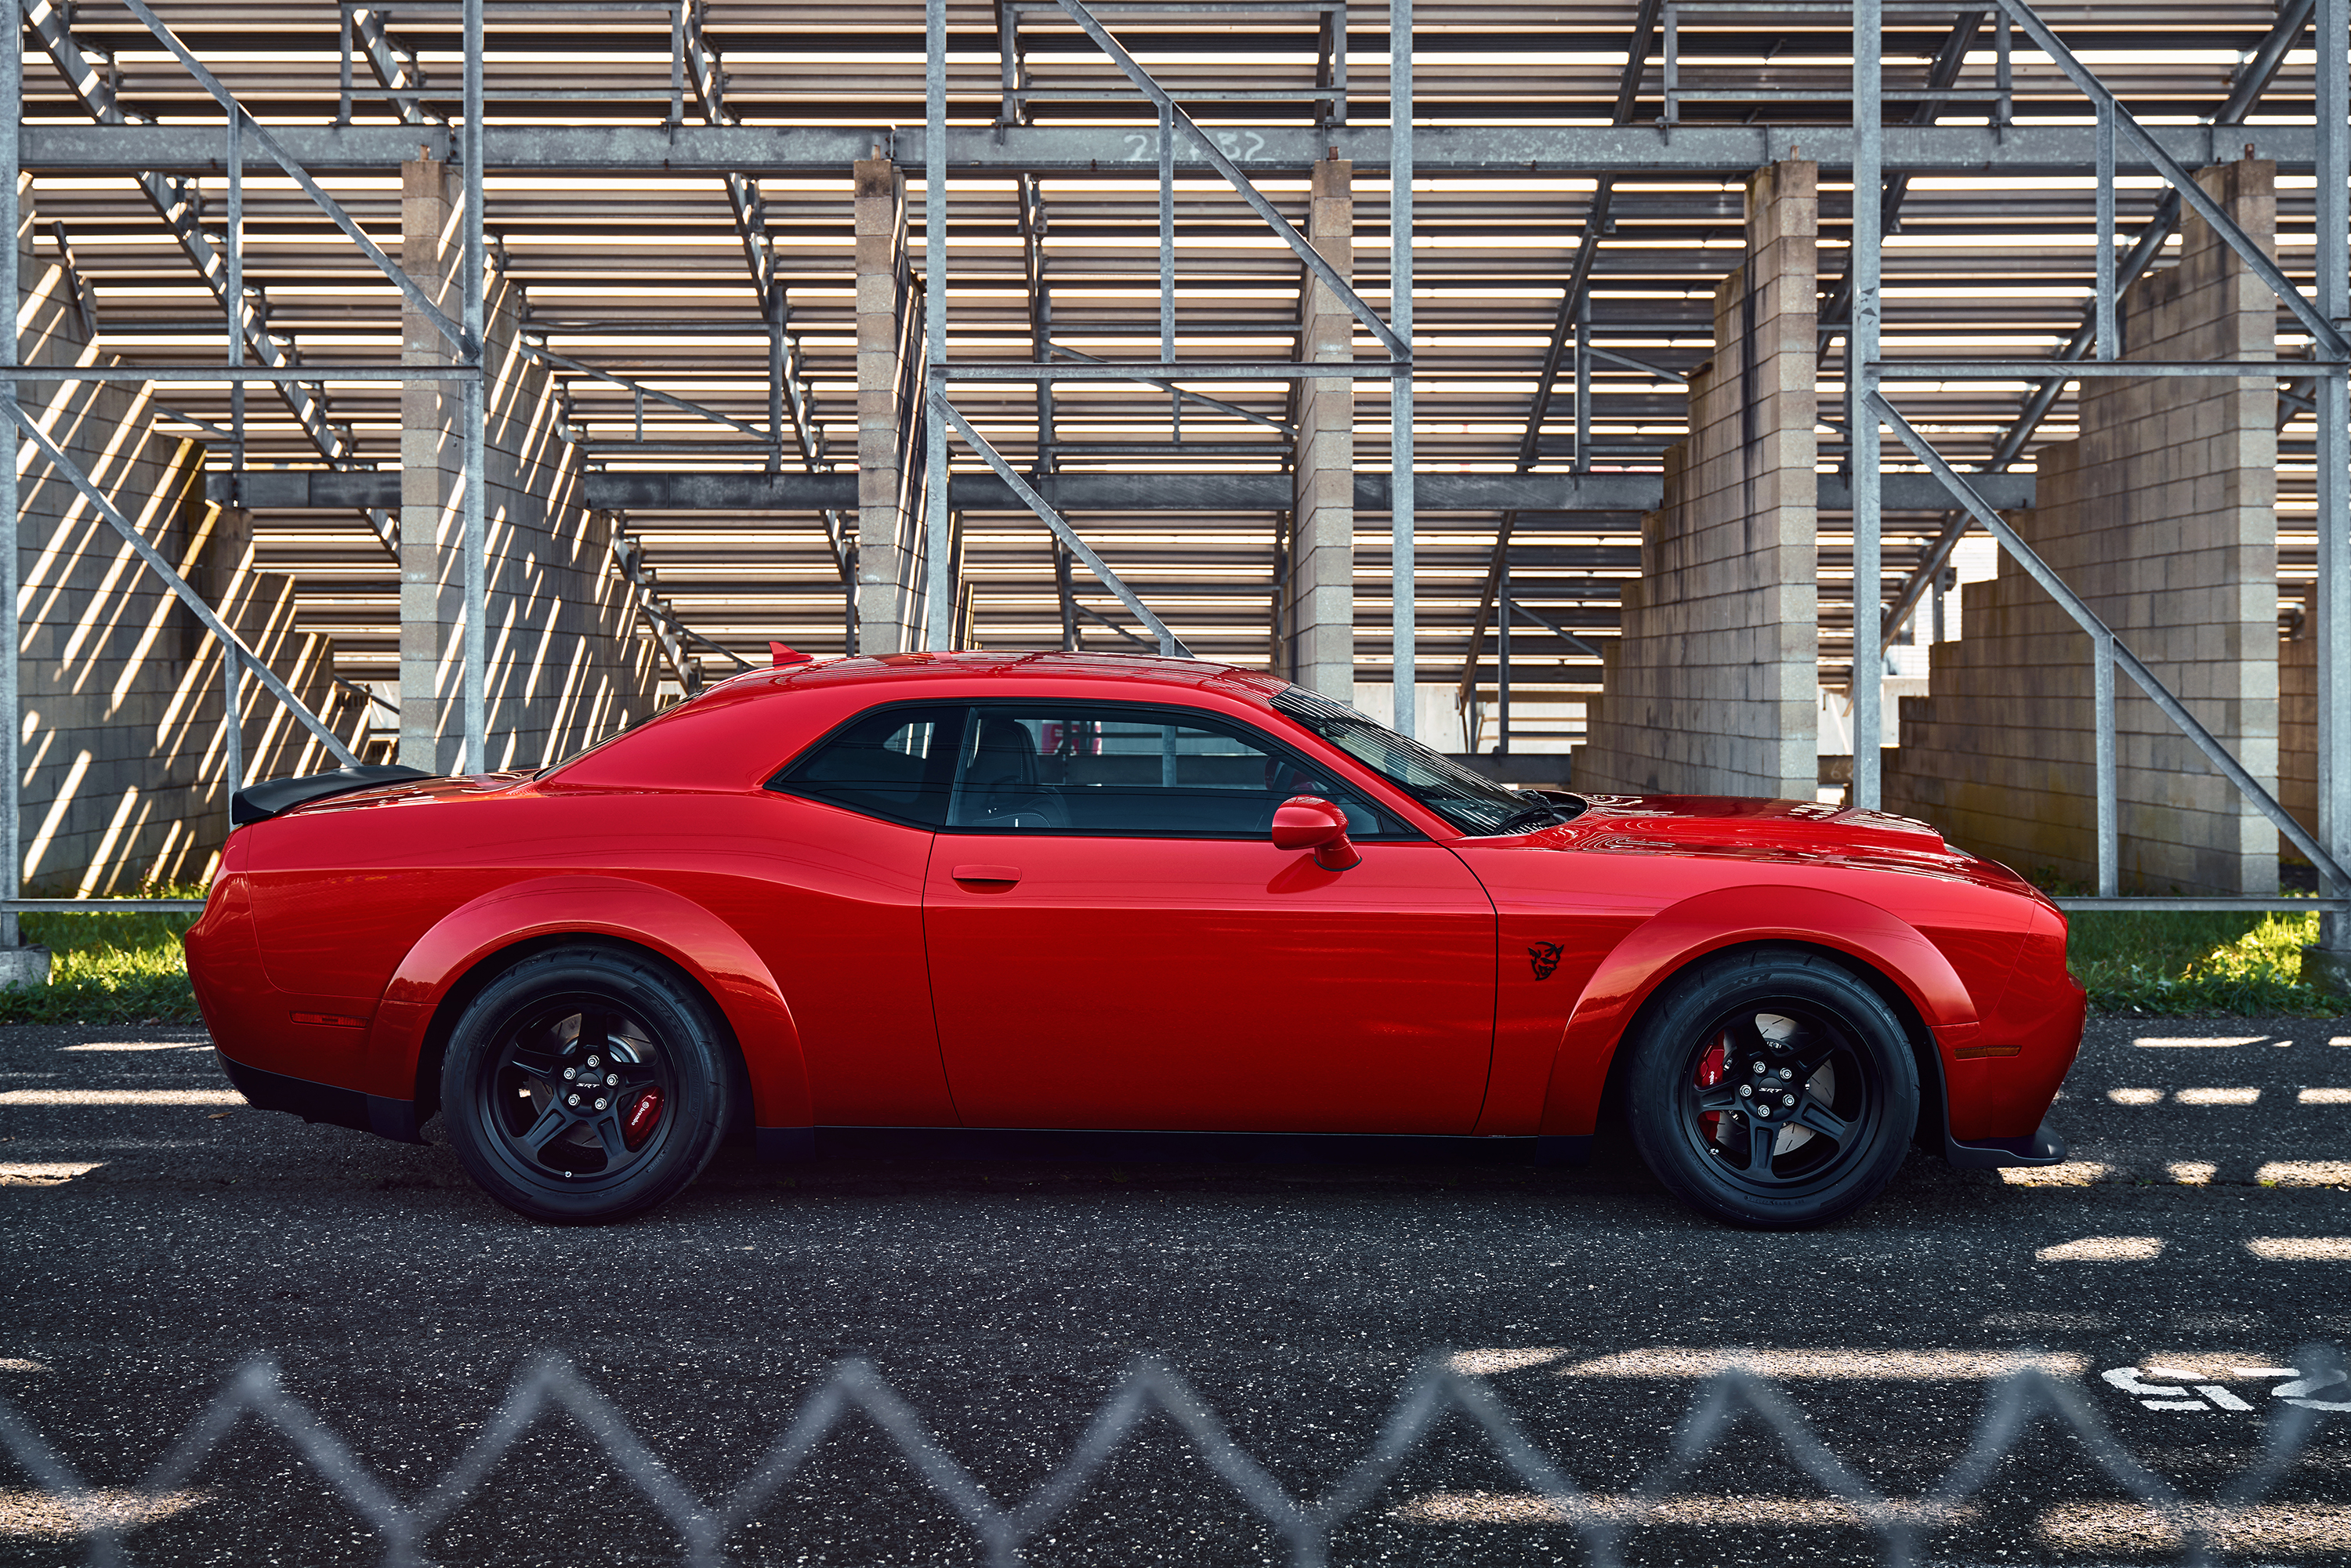 2018 Dodge Challenger SRT Demon profile